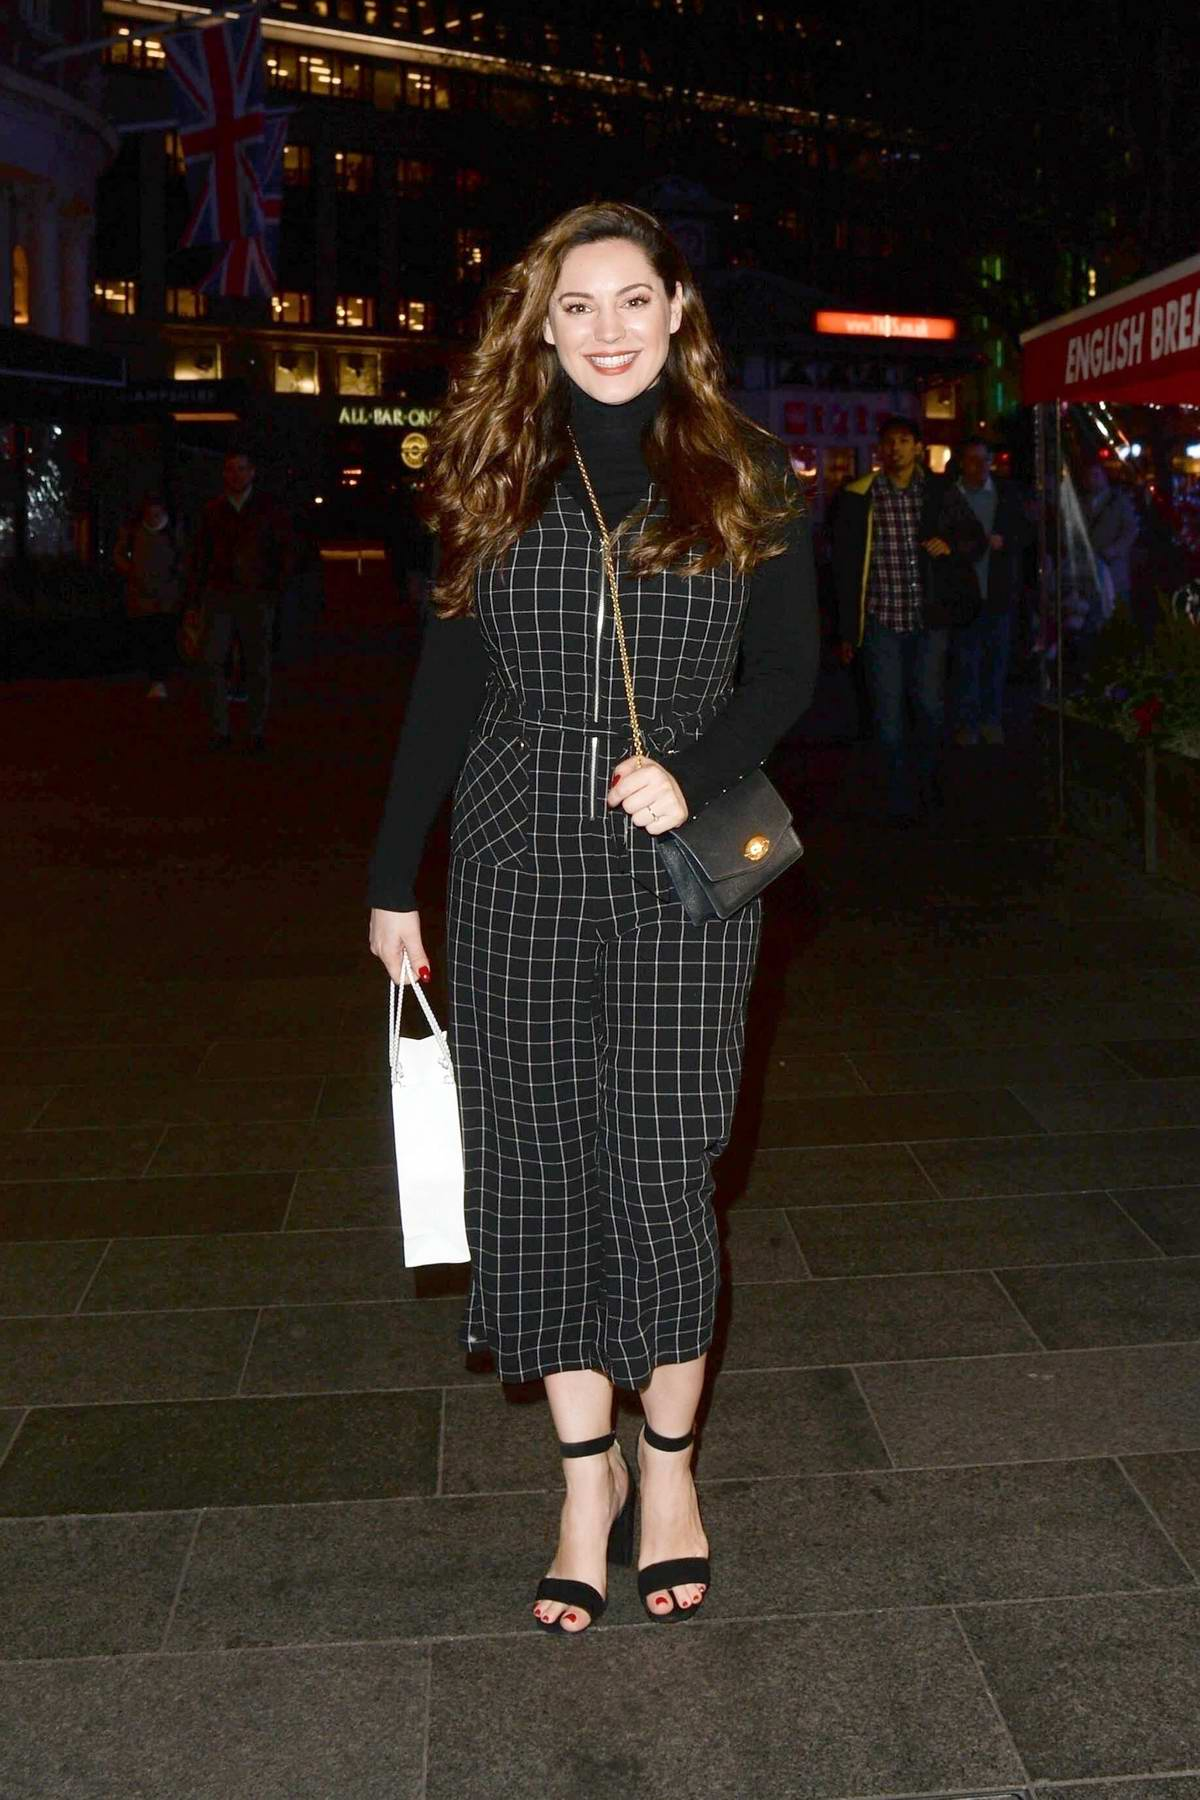 Kelly Brook seen wearing a black checkered outfit as she leaves Global Radio studios in London, UK